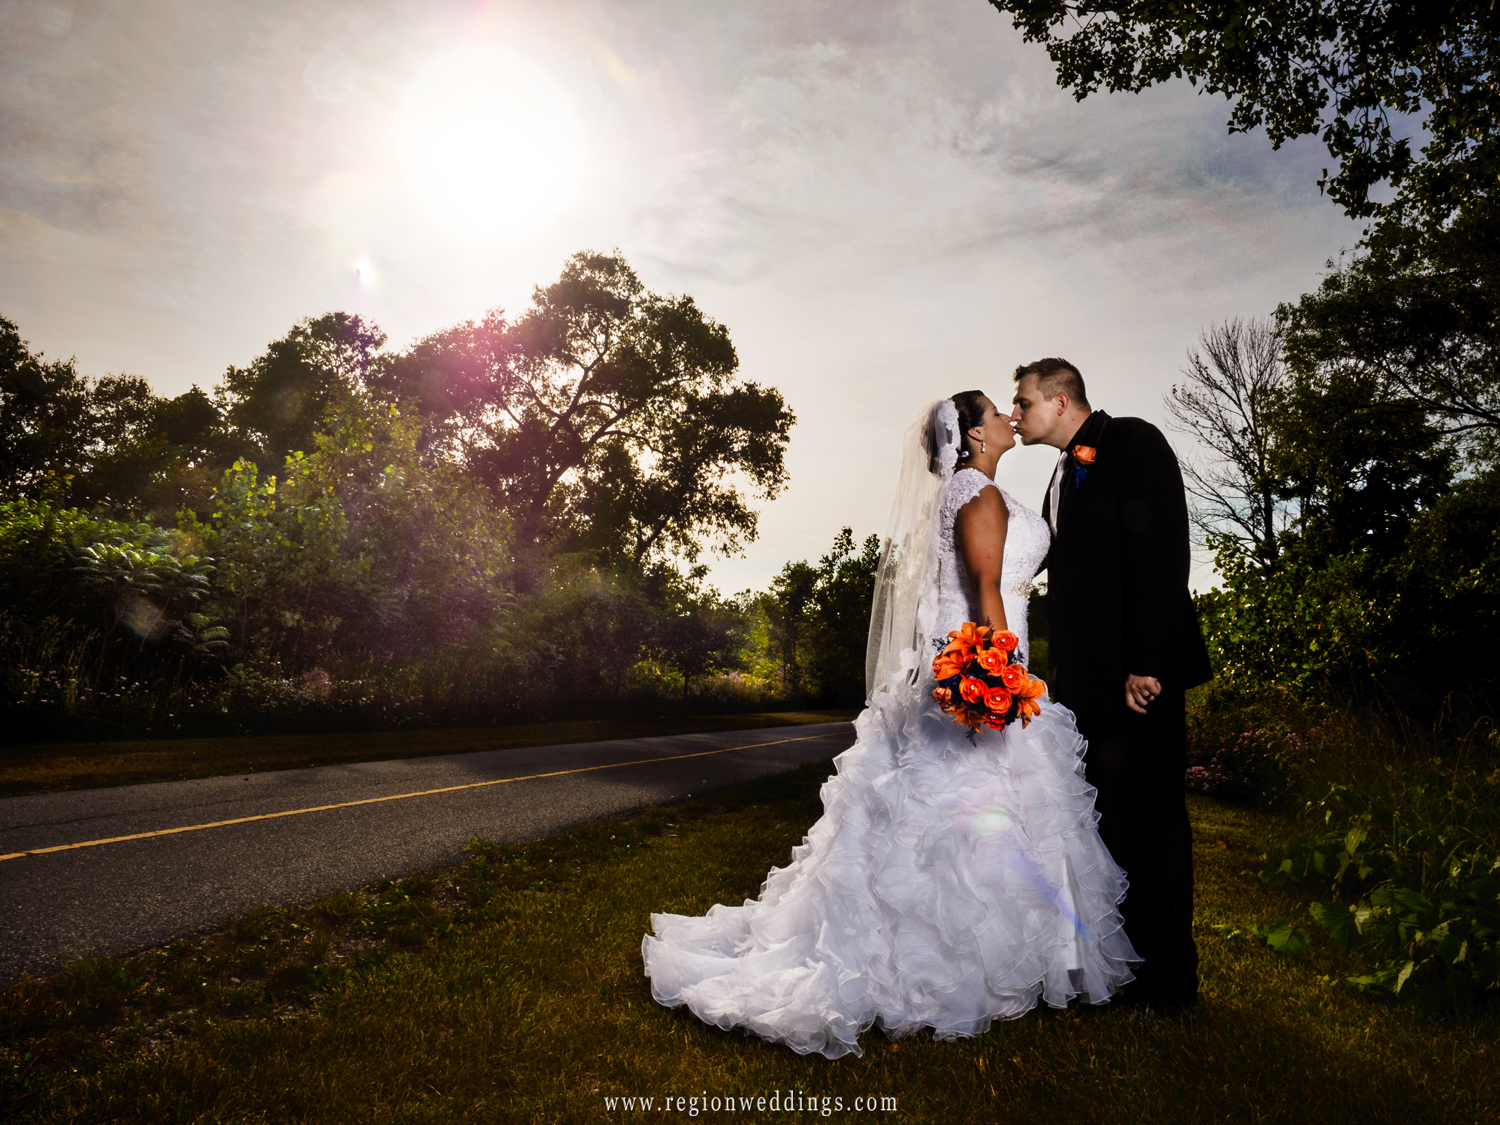 The bride and groom kiss with a sun burst in the sky above them.